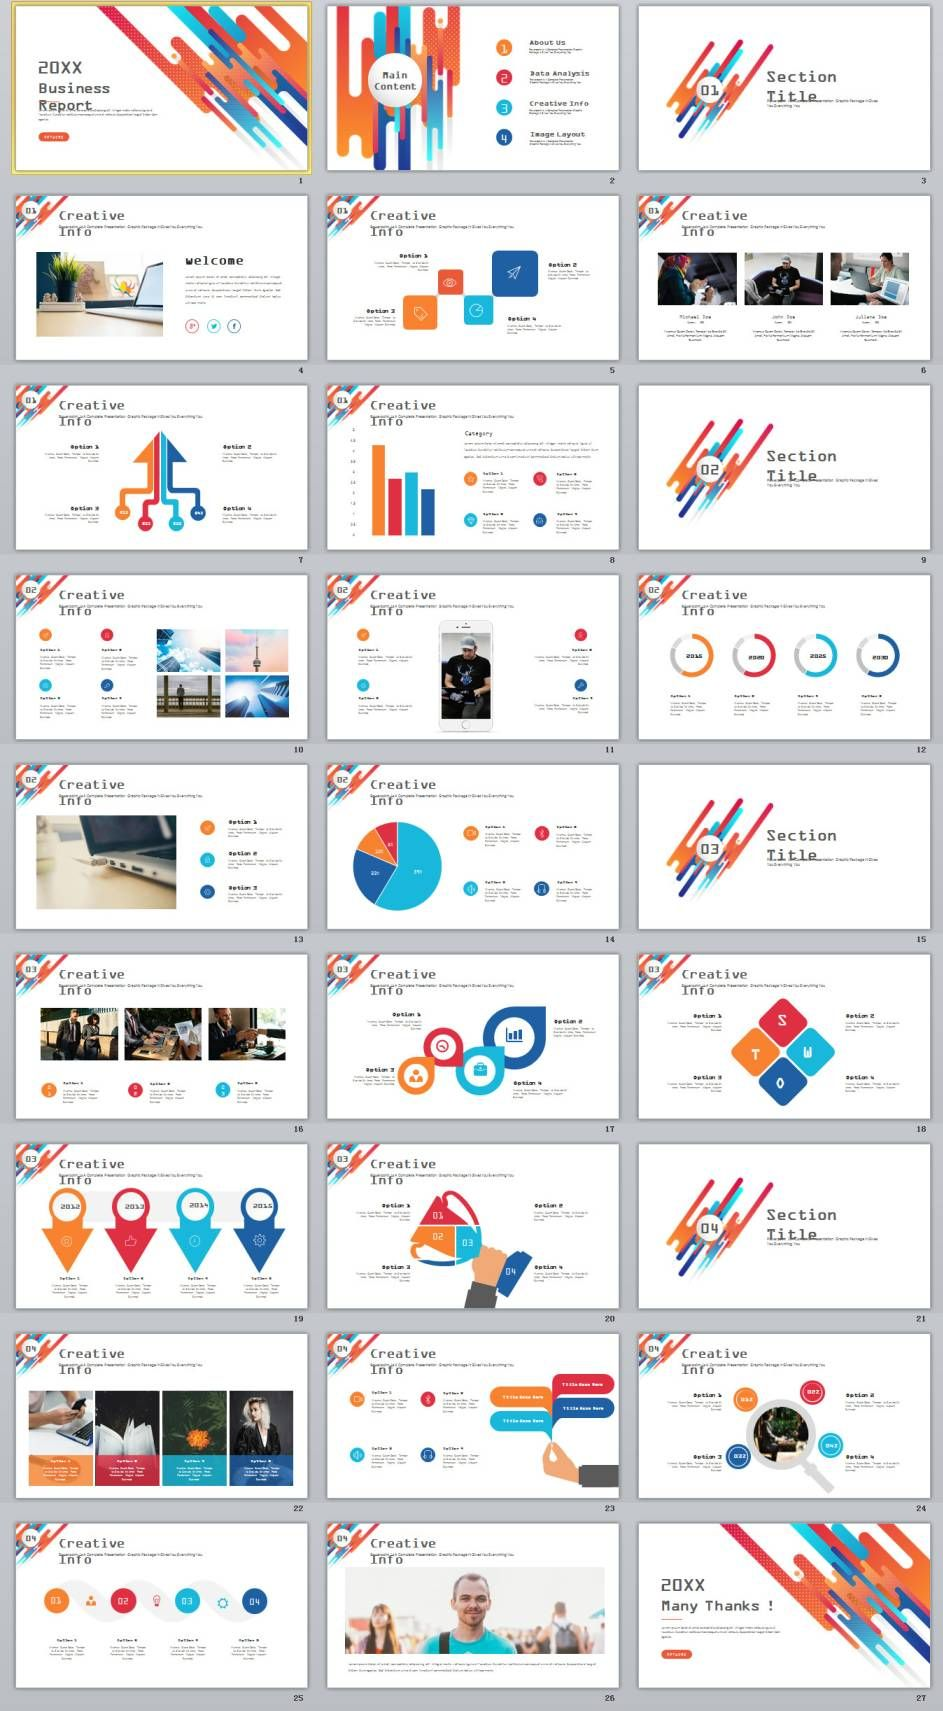 Creative Infographics Report Powerpoint Template  Ppt